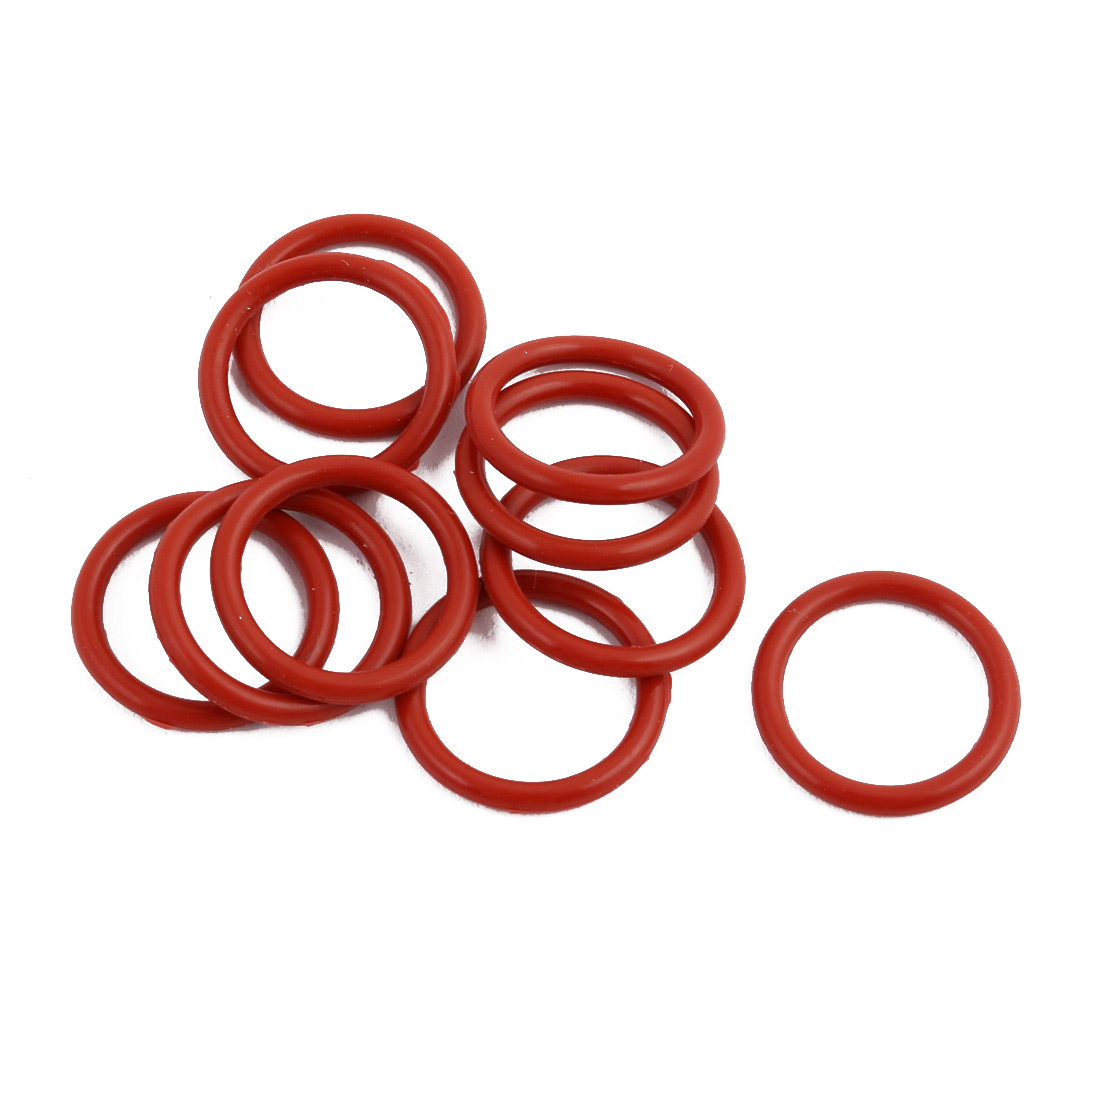 10Pcs Red Round Nitrile Butadiene Rubber NBR O-Ring 17mm OD 1.9mm Width